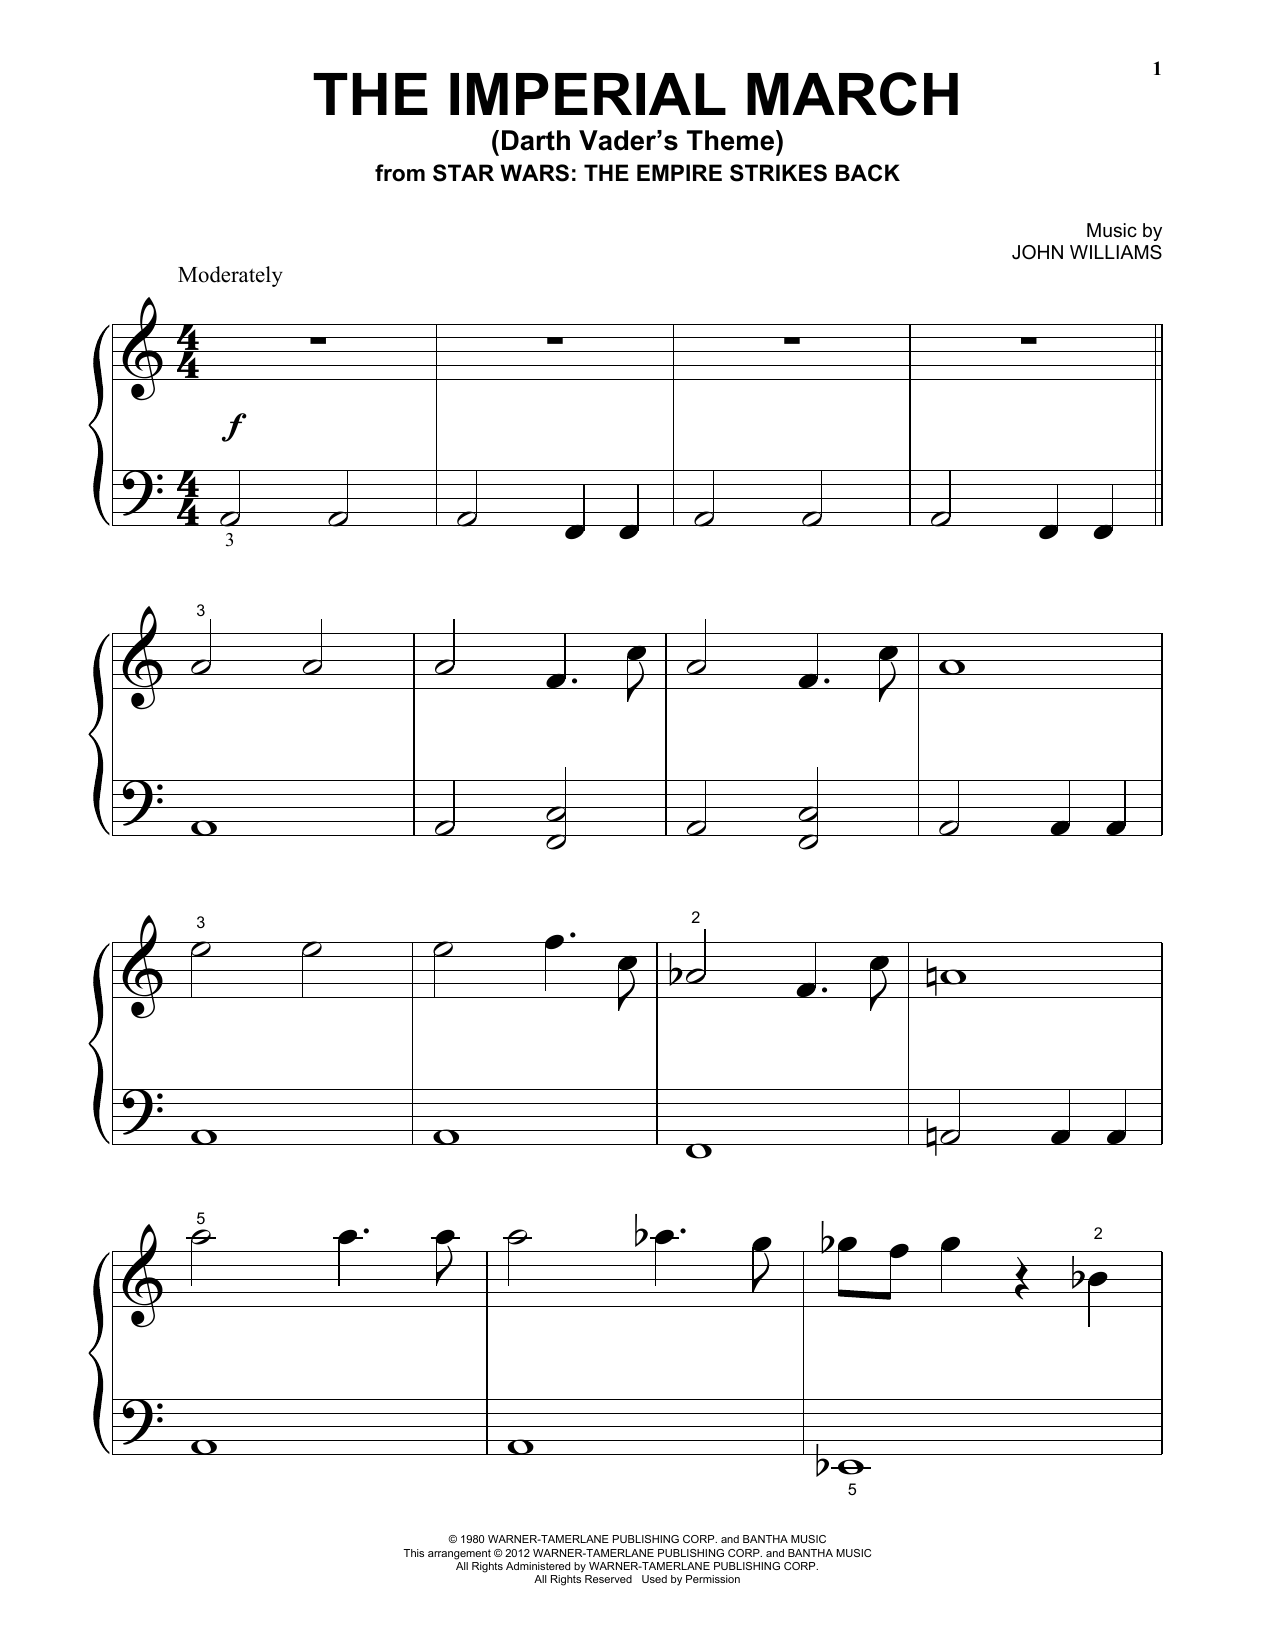 The Imperial March (Darth Vader's Theme) sheet music